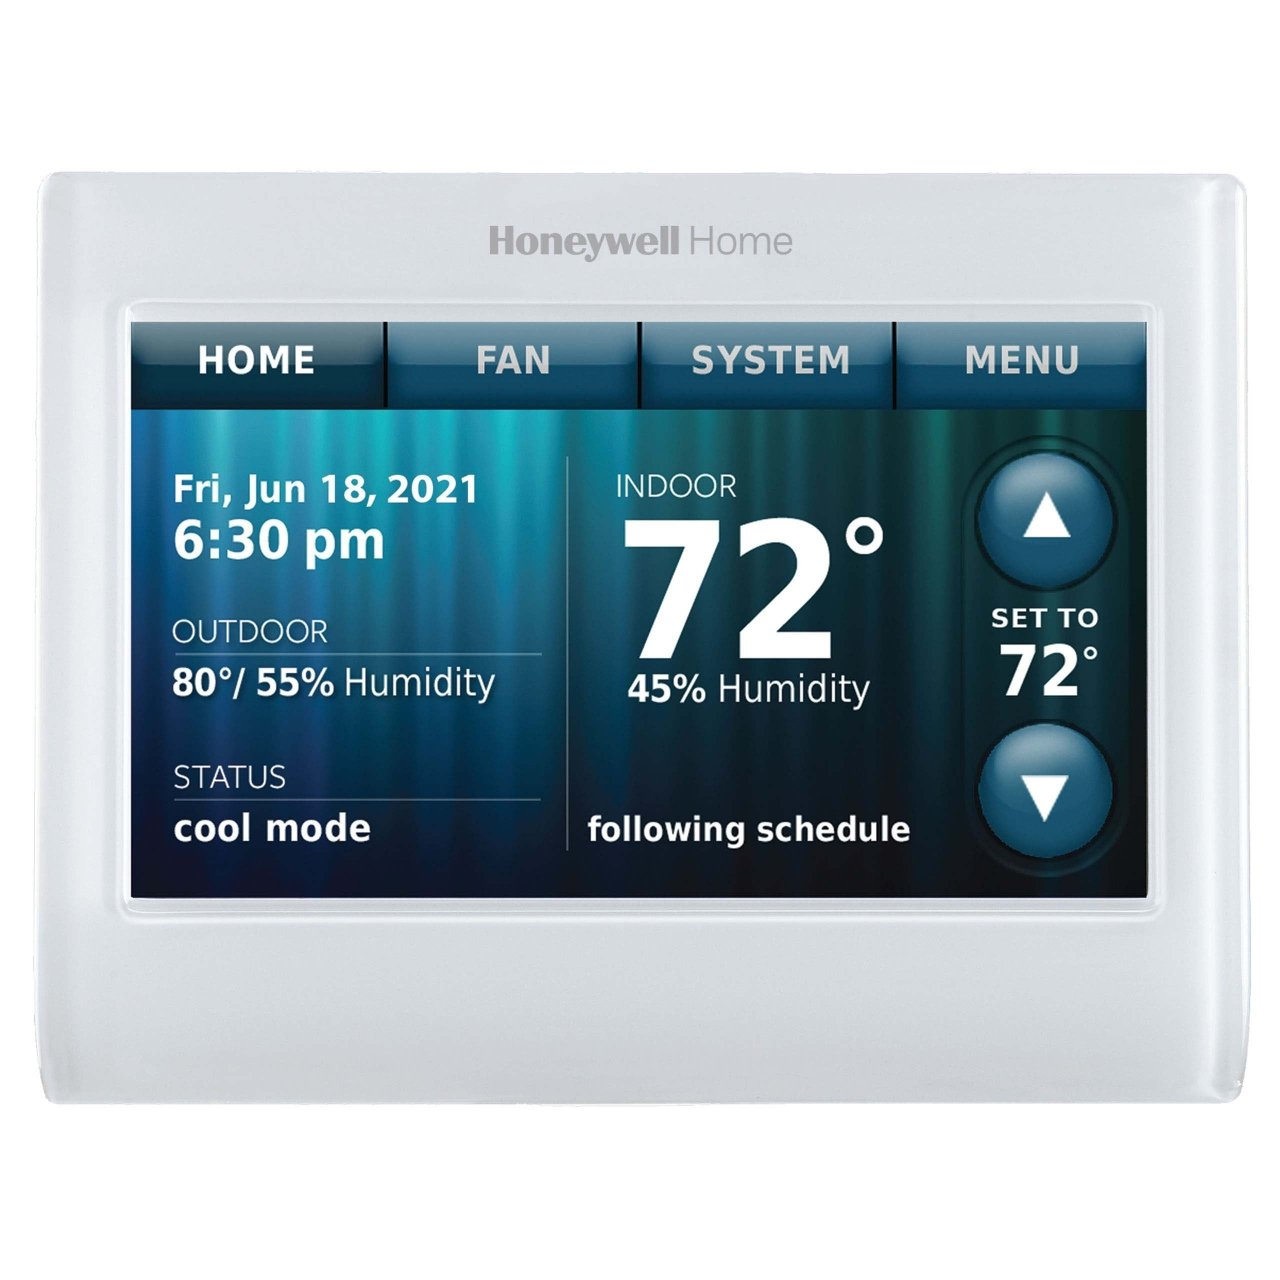 Wifi 9000 Color Touchscreen Thermostat Honeywell Home